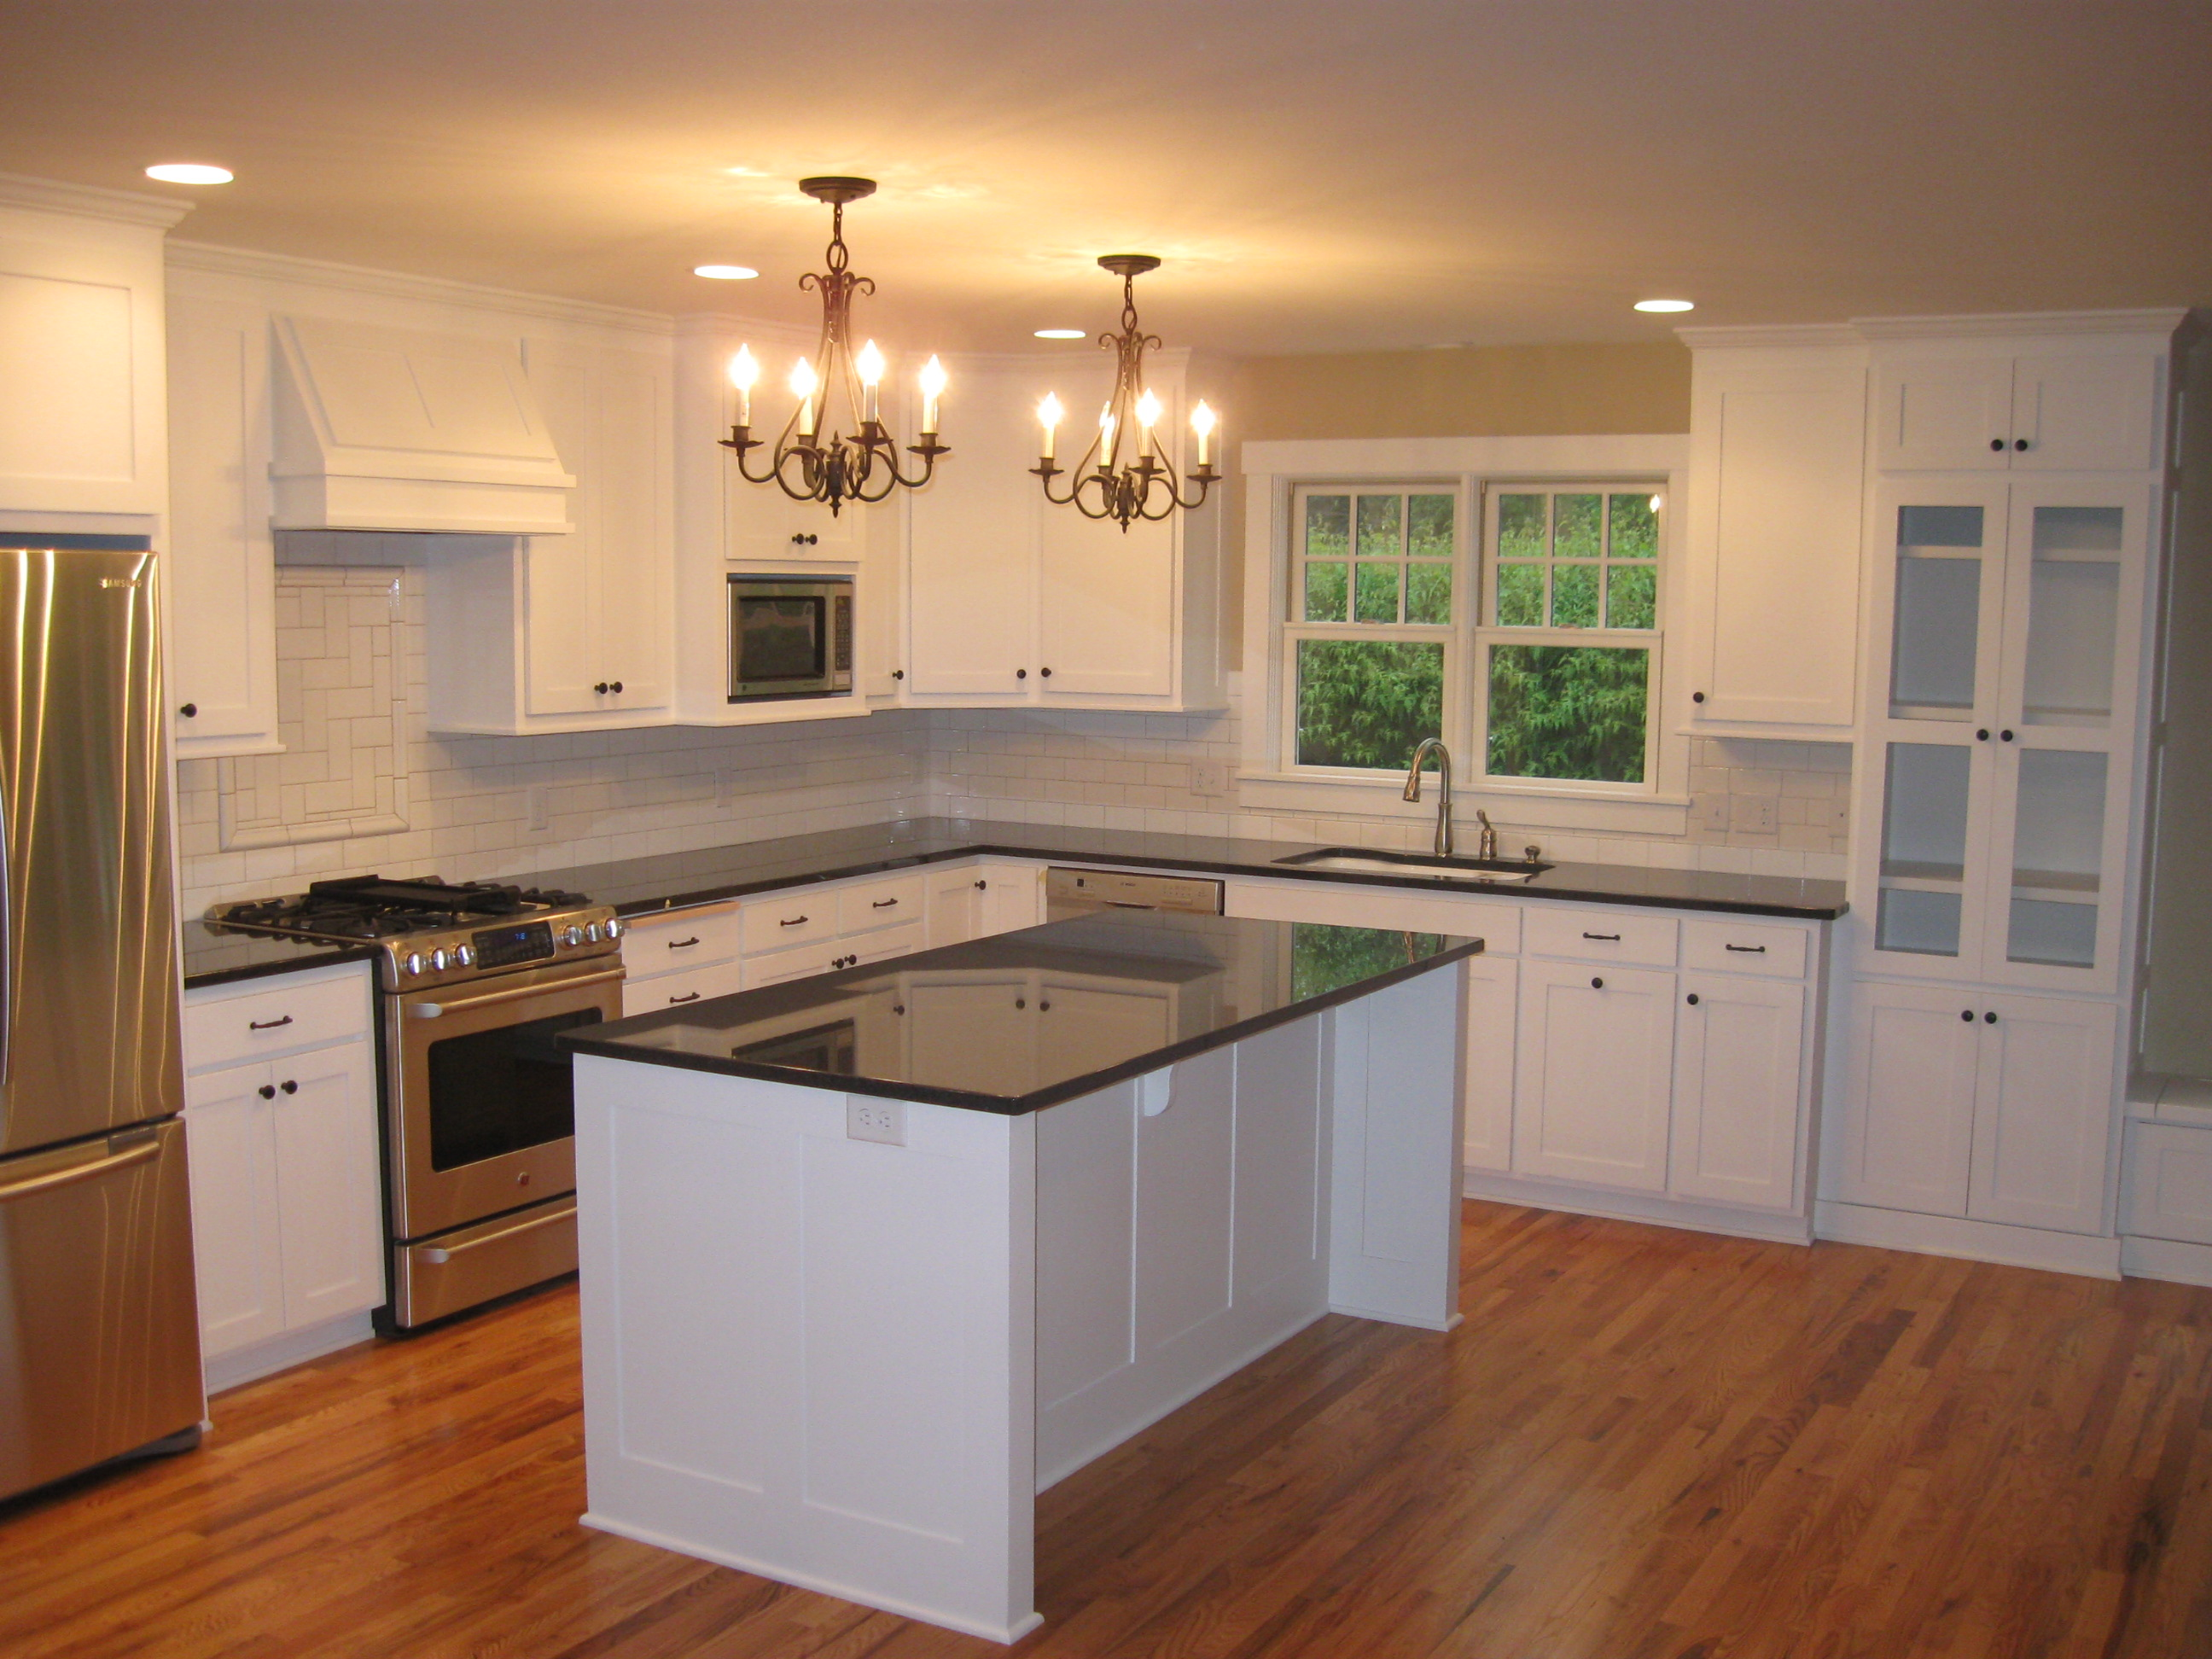 7-Essential-tips-for-a-perfect-kitchen_04